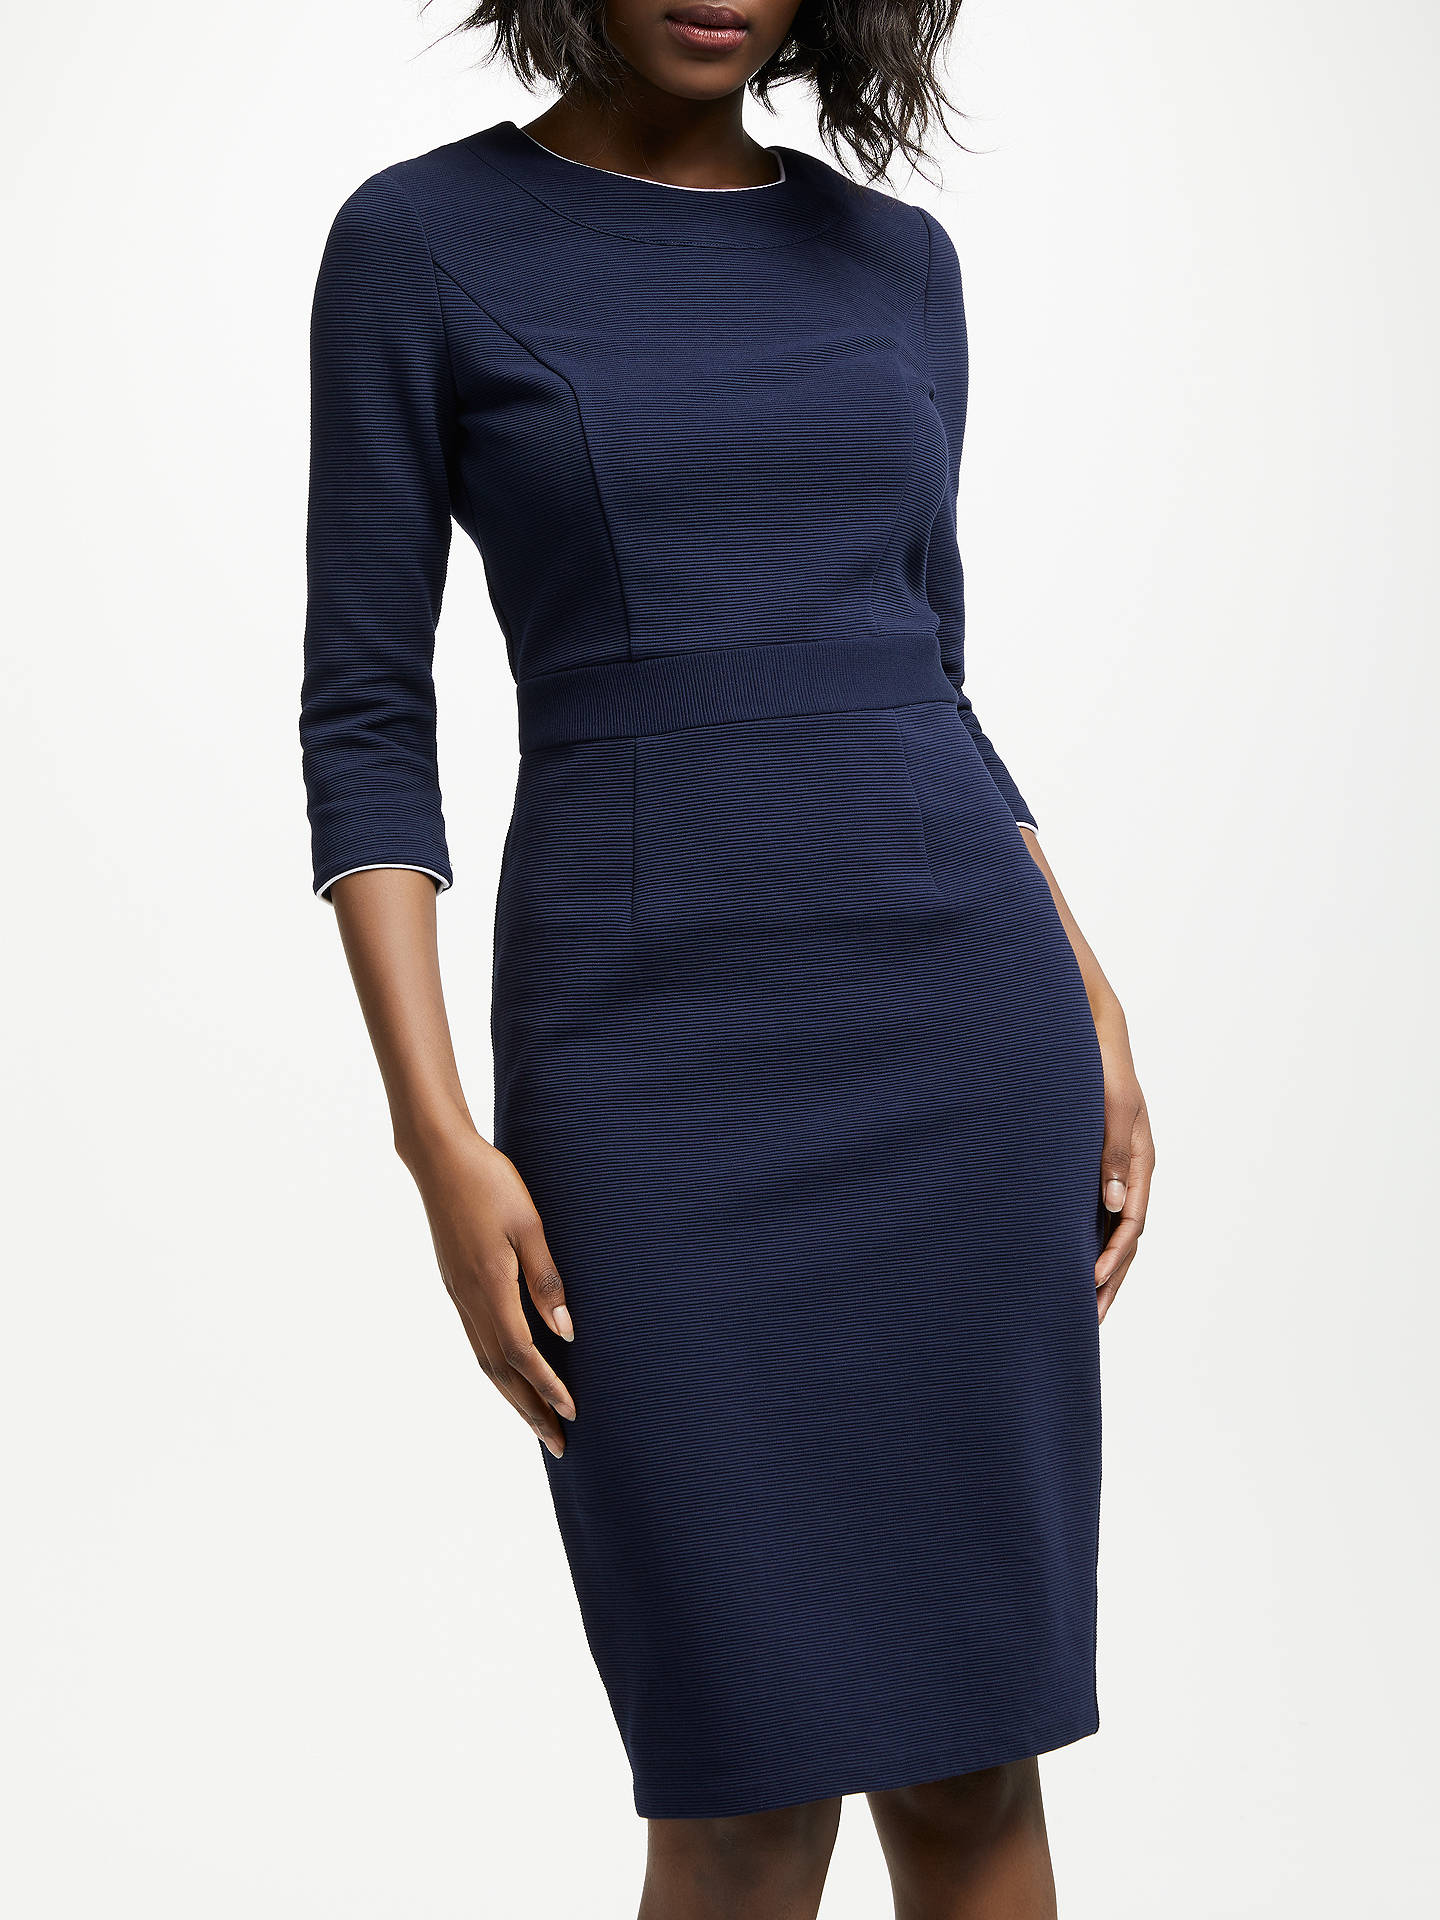 Buy Boden Mia Ottoman Dress, Navy, 10 Online at johnlewis.com